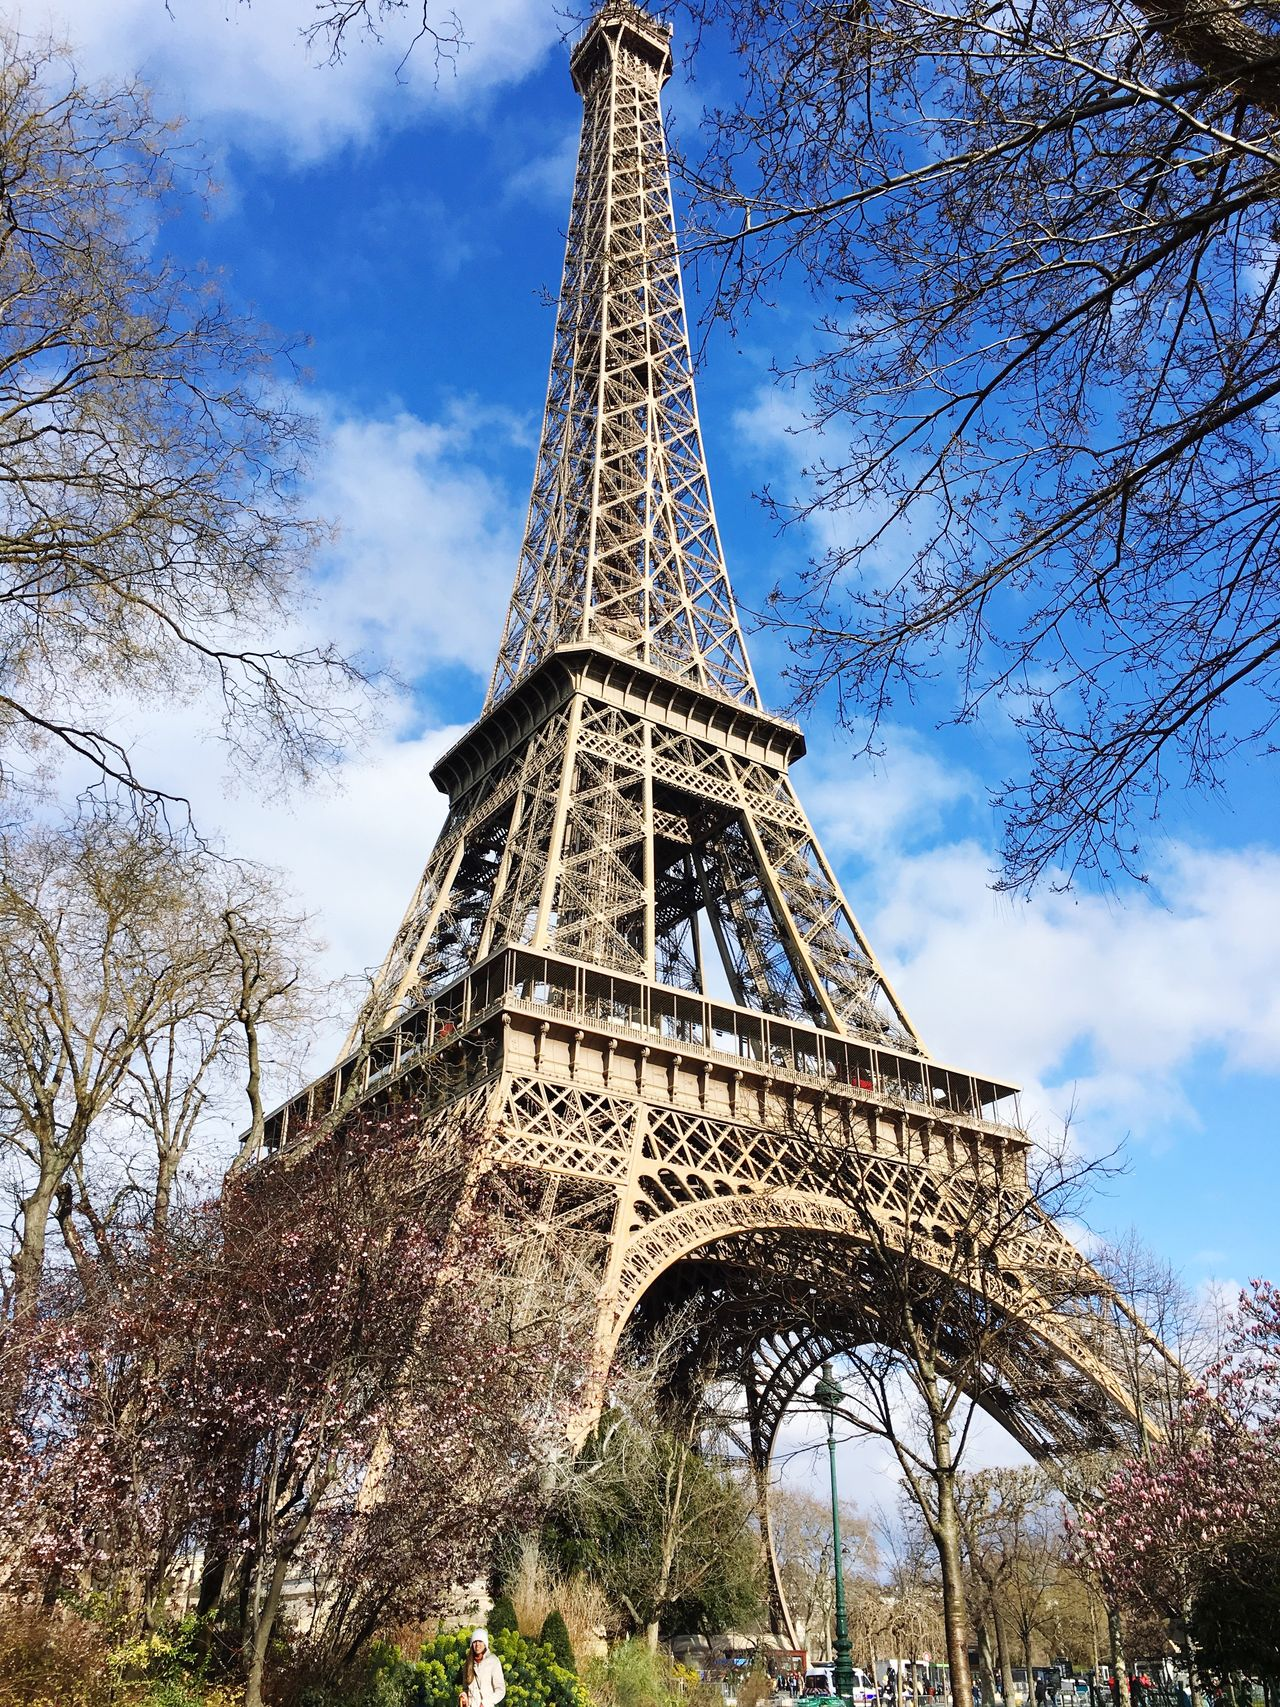 The Eiffel Tower/ Height: 300 m Paris Tour Eiffel Eiffel Tower Arquitecture Engineering Iron Structure Hello World Taking Photos Enjoying Life 43 Golden Moments Iphone6s Iphone6s Photography Iphonephotography Travel Photography Beautiful Day Sunny Day Beautifulcity JesuisParis Torre Eiffel Honeymoon UrbanSpringFever Urban Spring Fever Backgrounds Outdoors